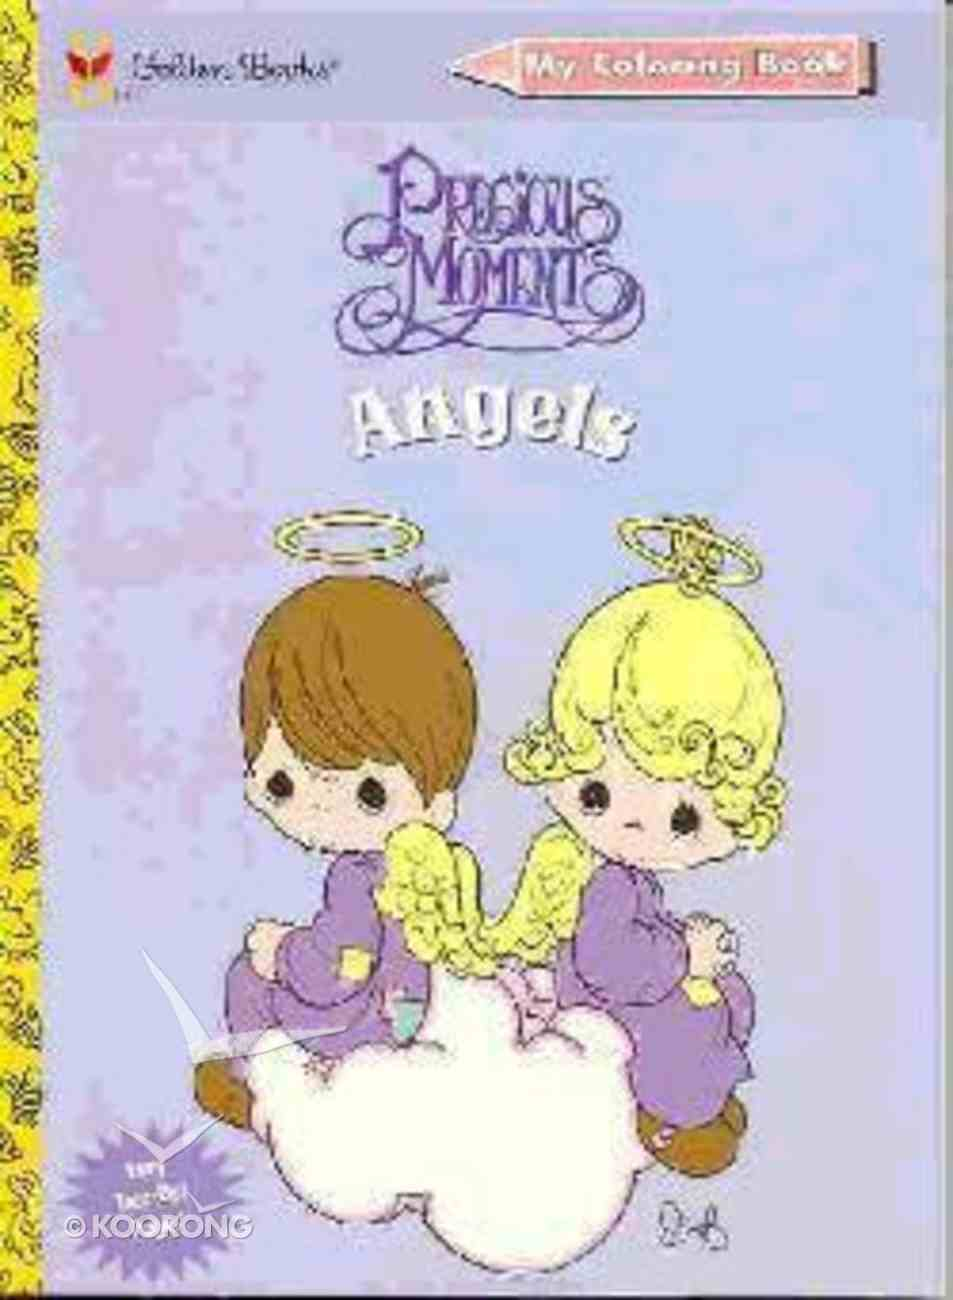 Angels (Precious Moments) (Golden Books Series) Paperback